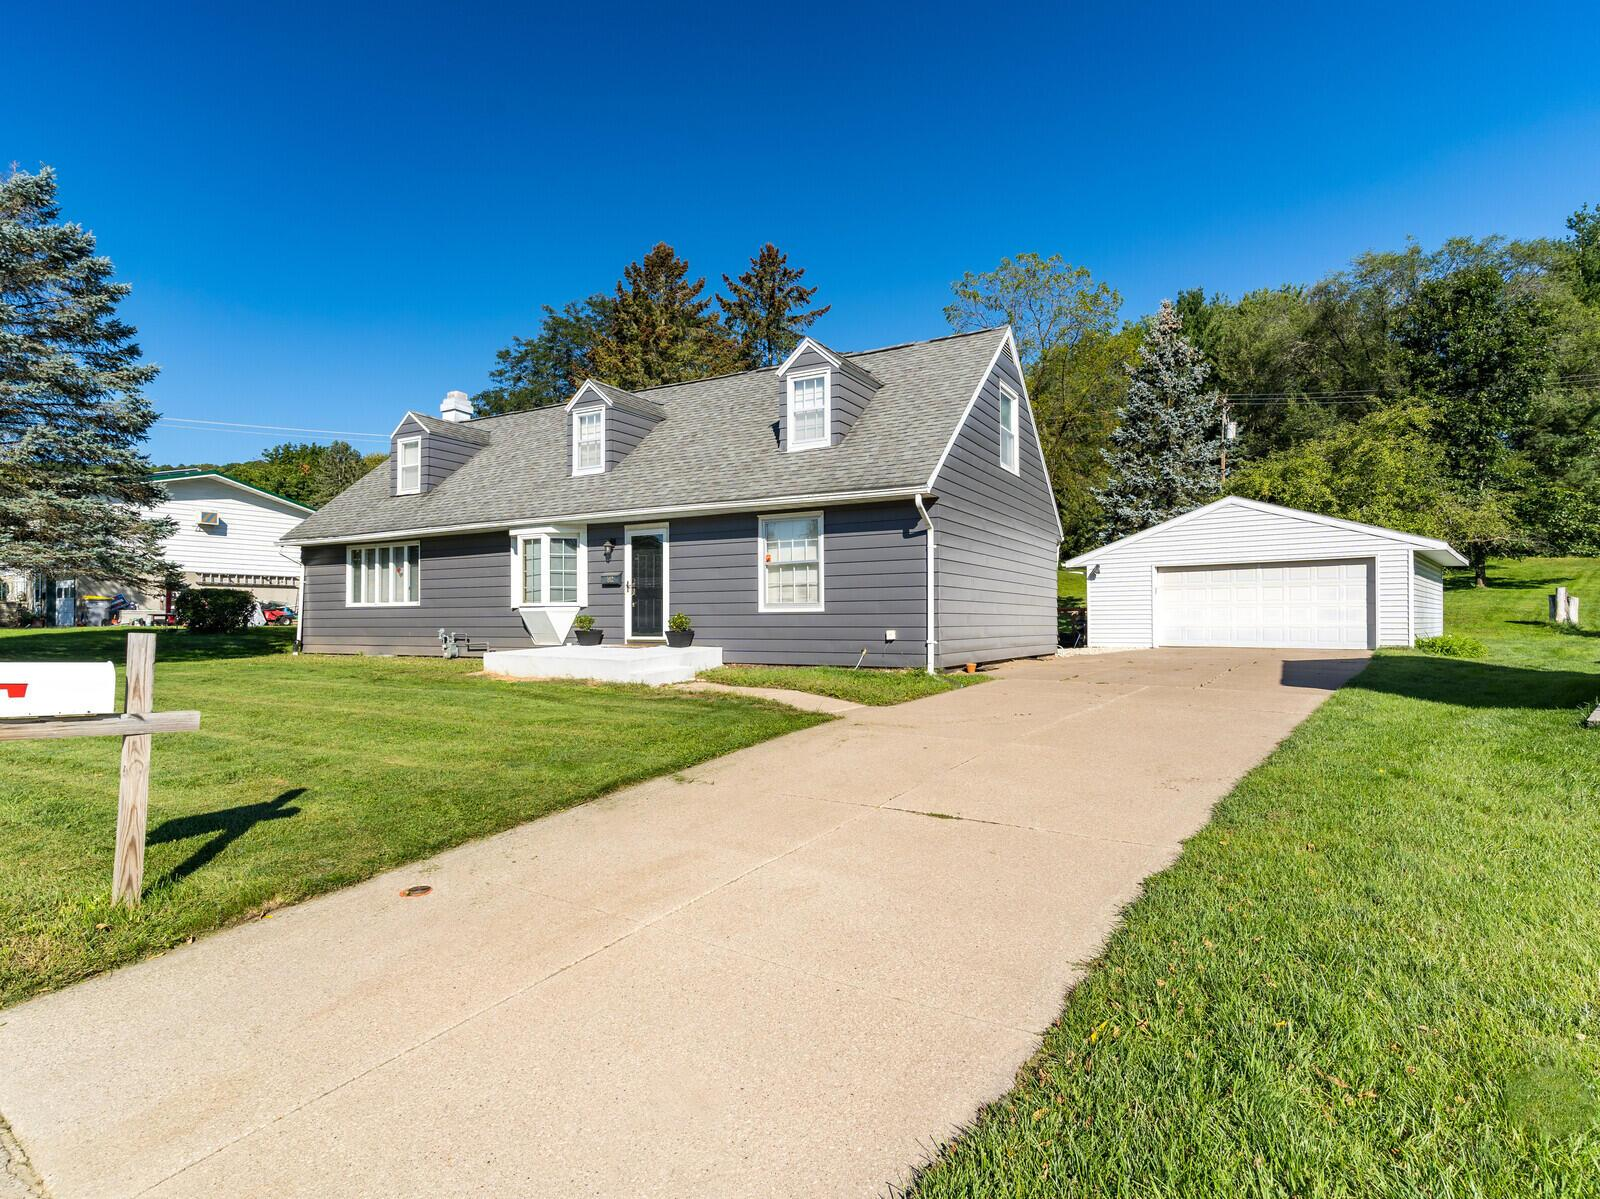 Property Image for 412 4th St N